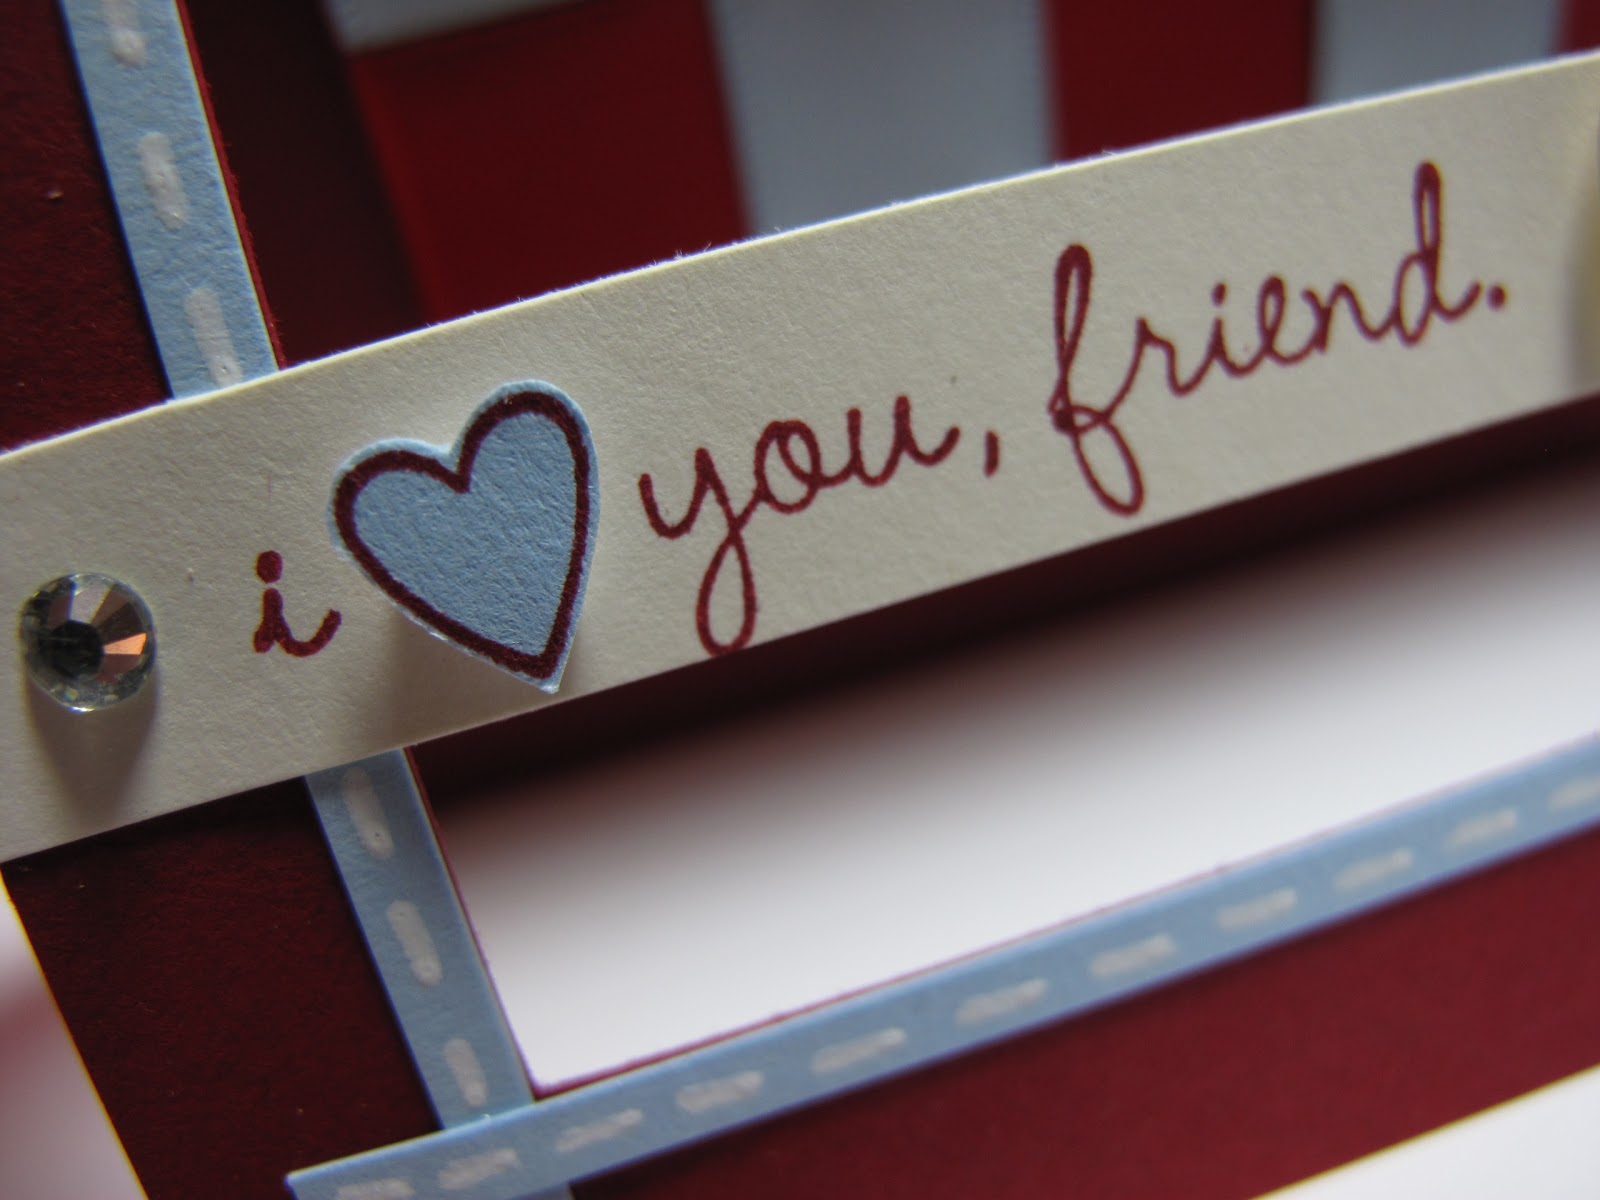 I Love You Friend Wallpaper